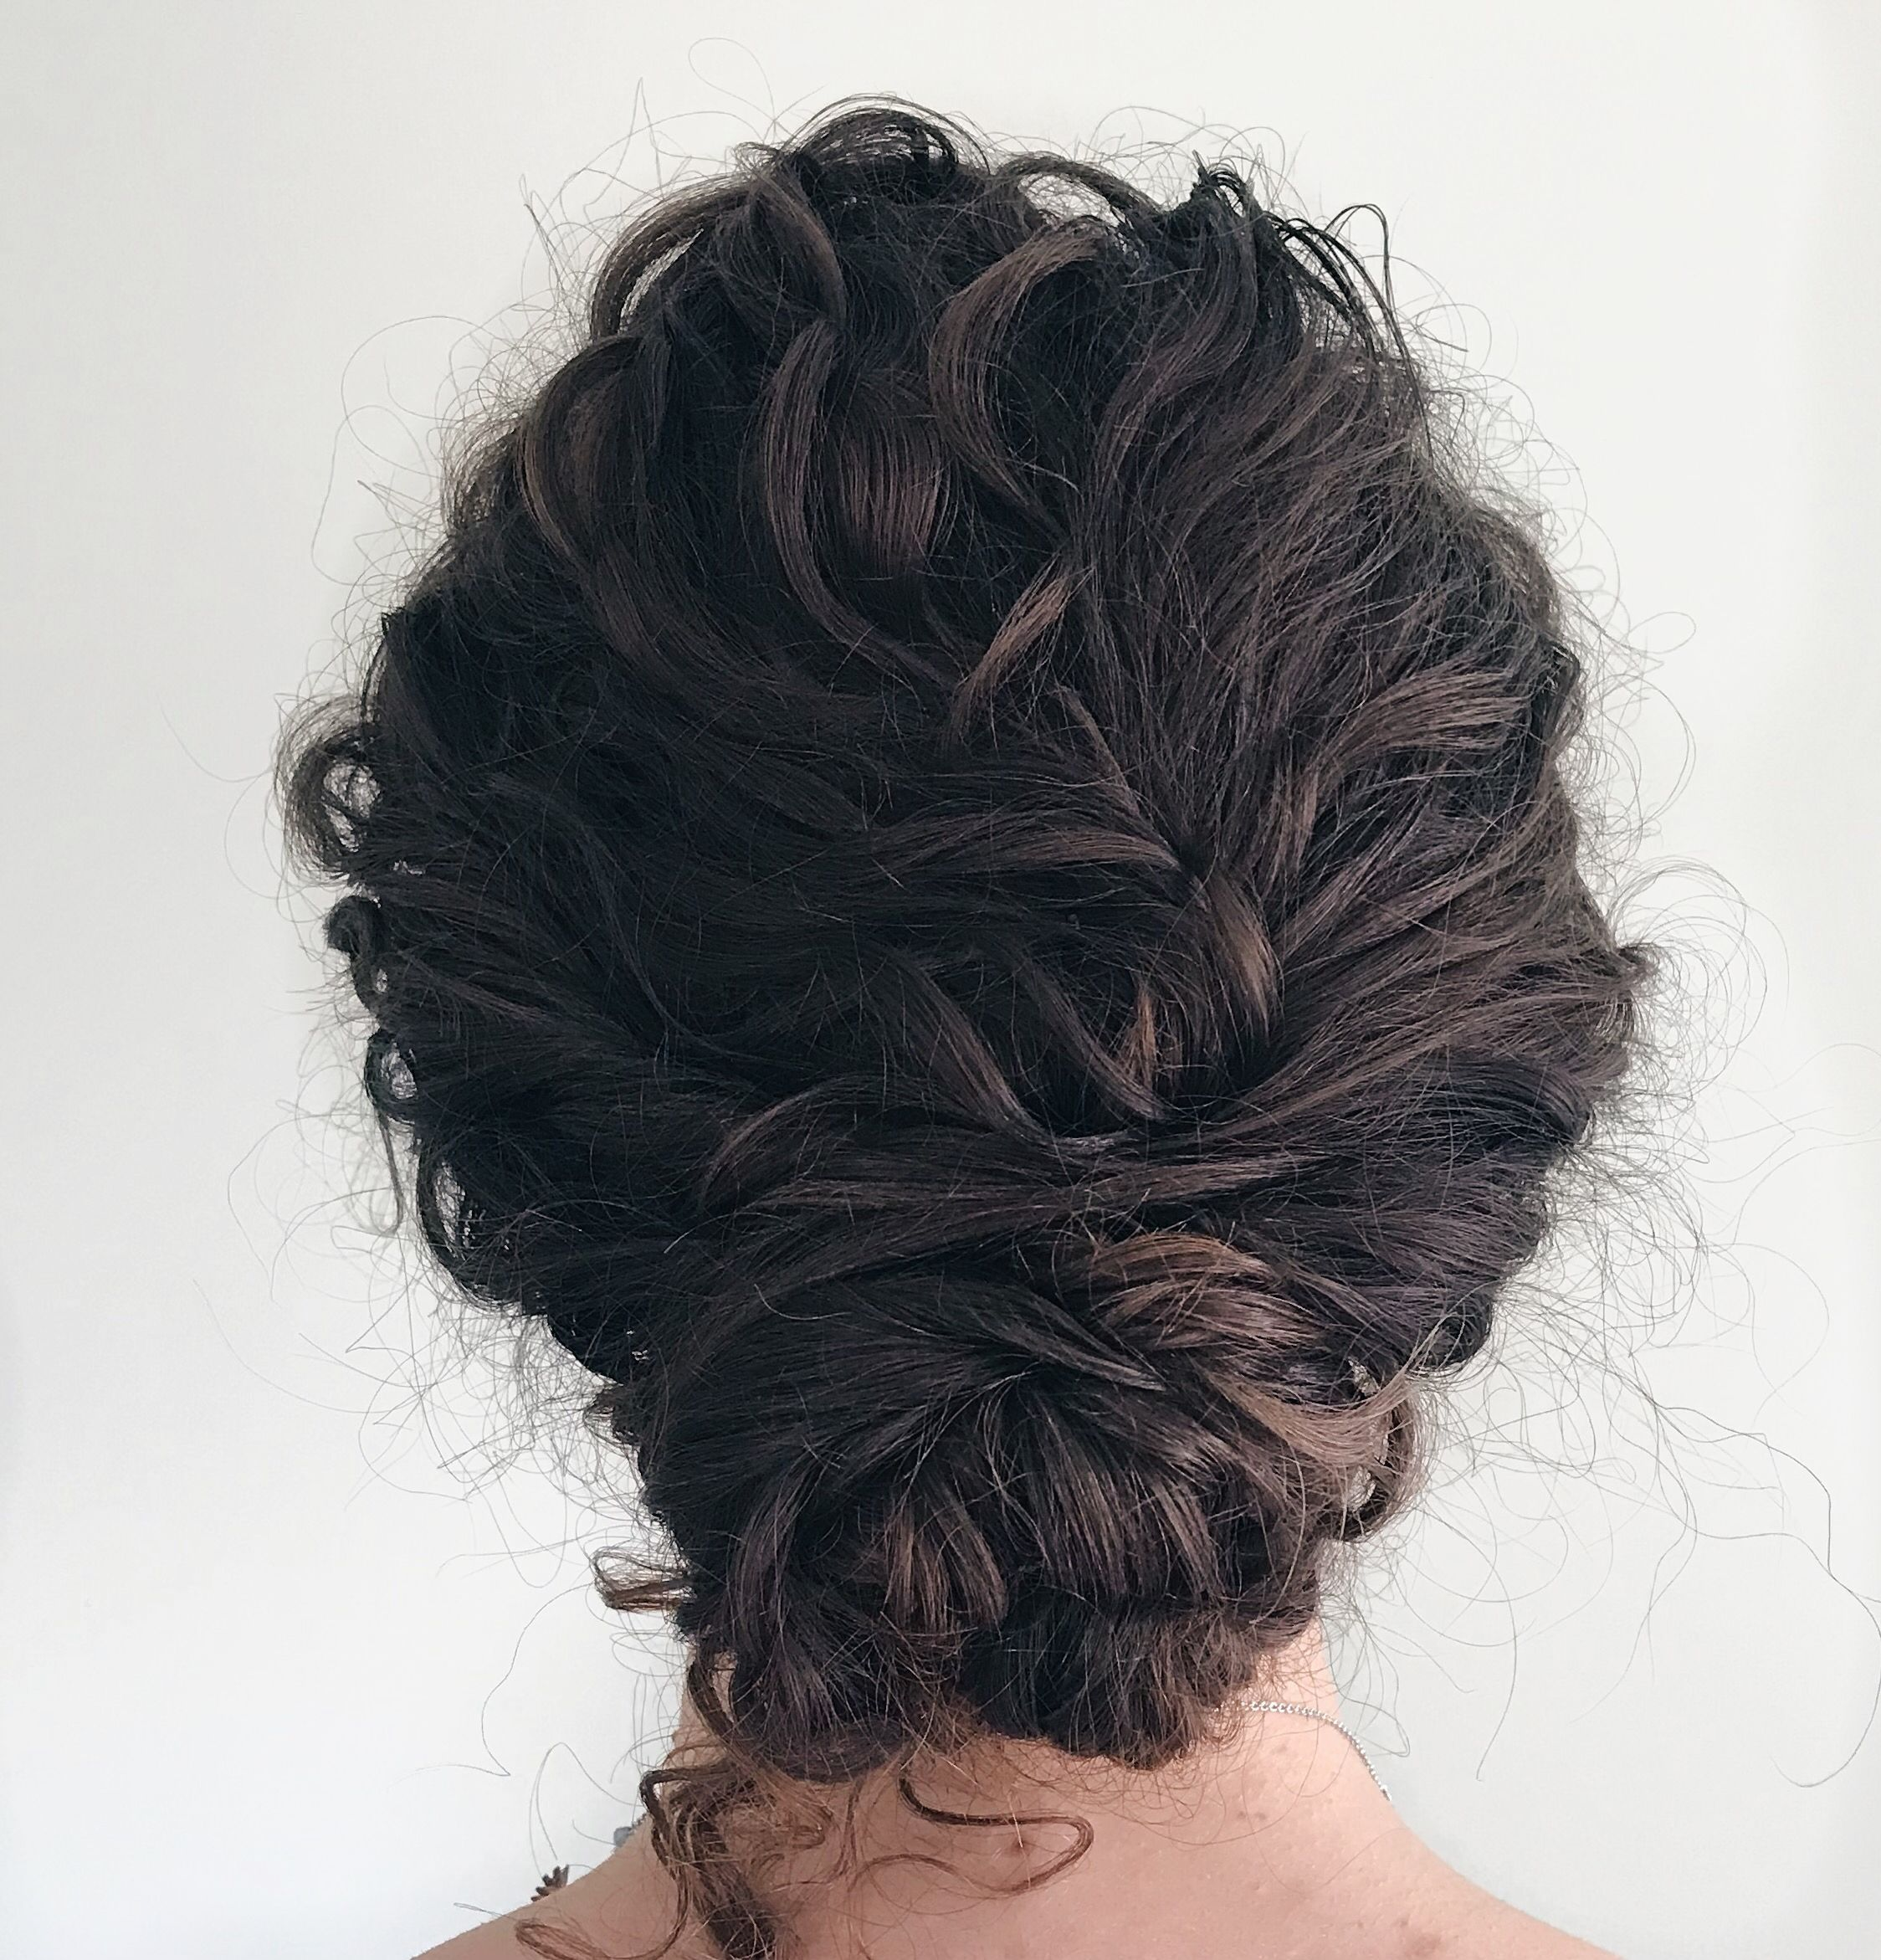 naturally curly hair in a low bun. textured hair boho style